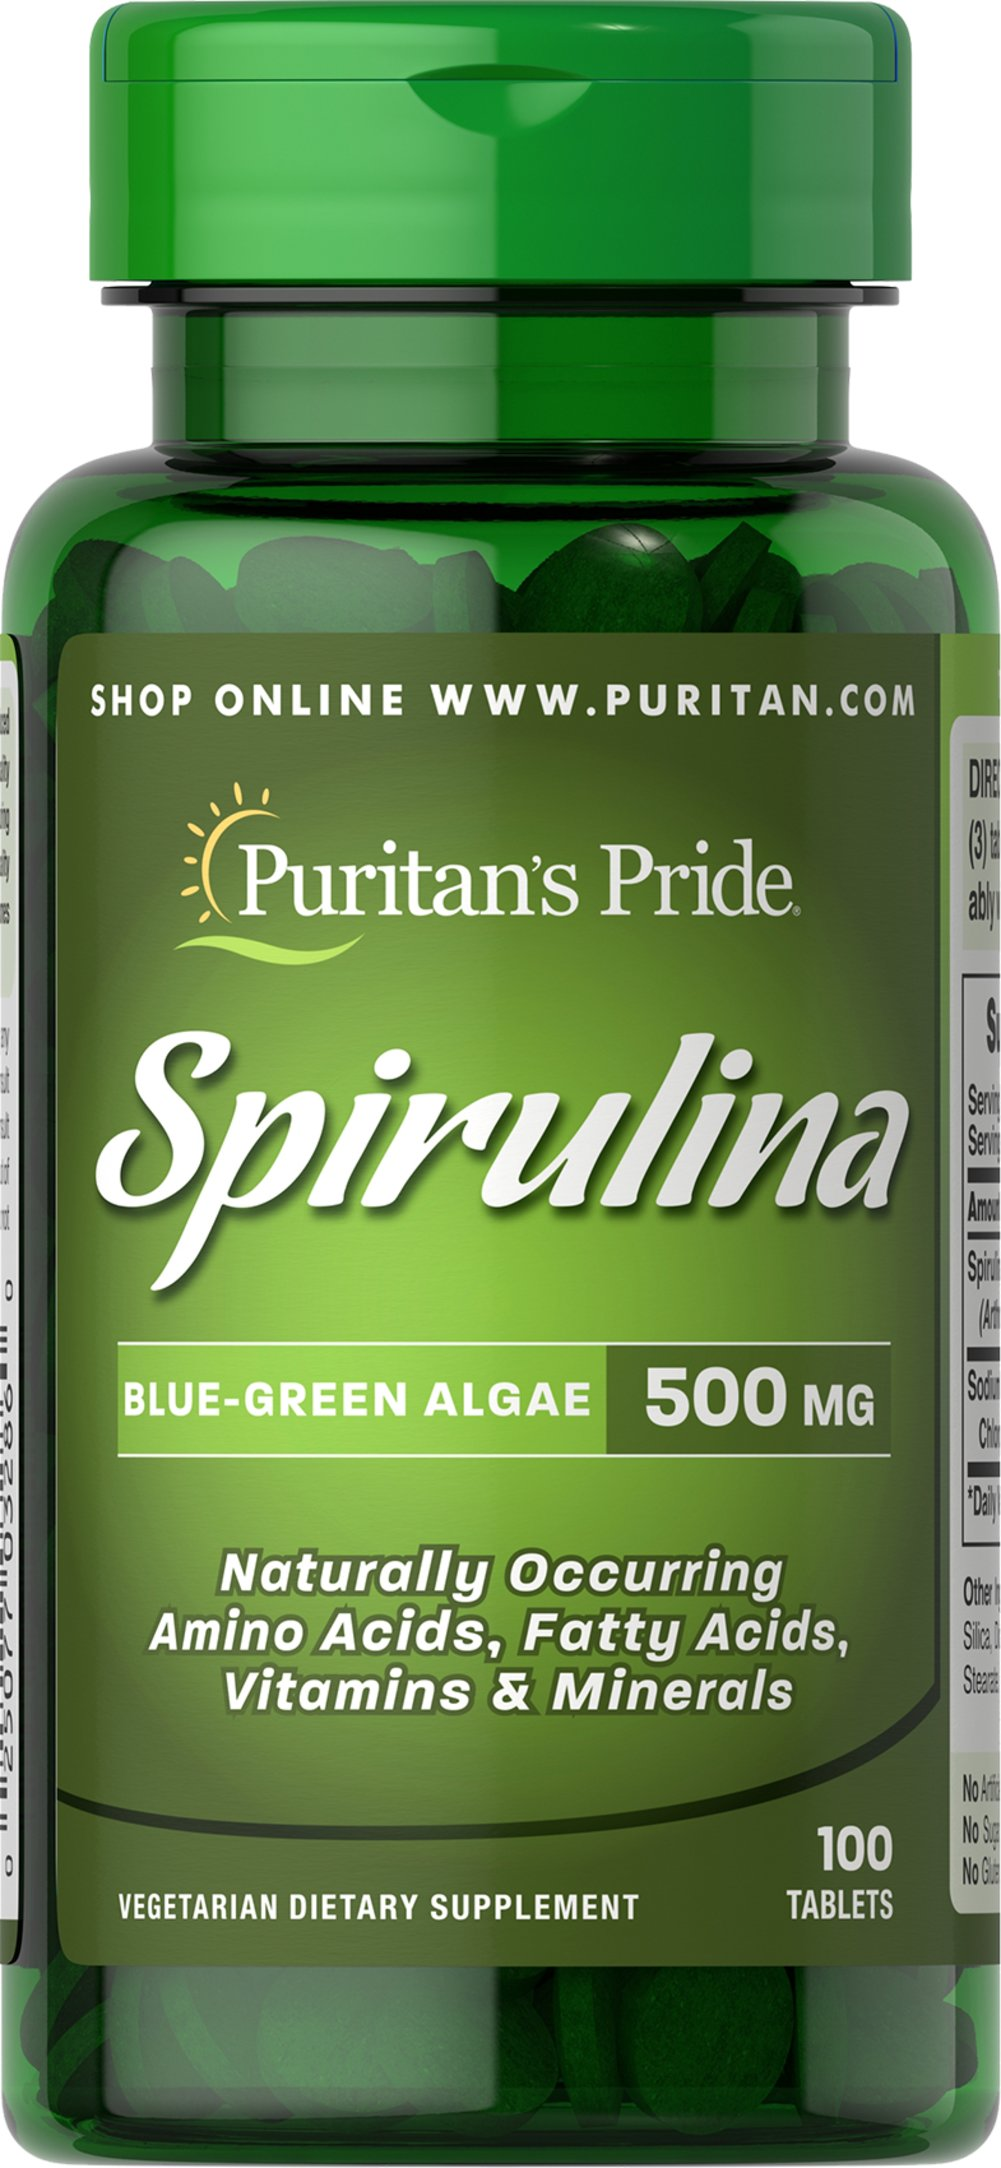 Spirulina 500 mg <p>Spirulina is a blue/green algae that can be found in the world's oceans and lakes.**</p><p>Our Spirulina's high quality 65% protein is thoroughly assimilated without the worry of cholesterol and fat that other protein sources may provide. Available in powder and tablets.</p> 100 Tablets 500 mg $9.79